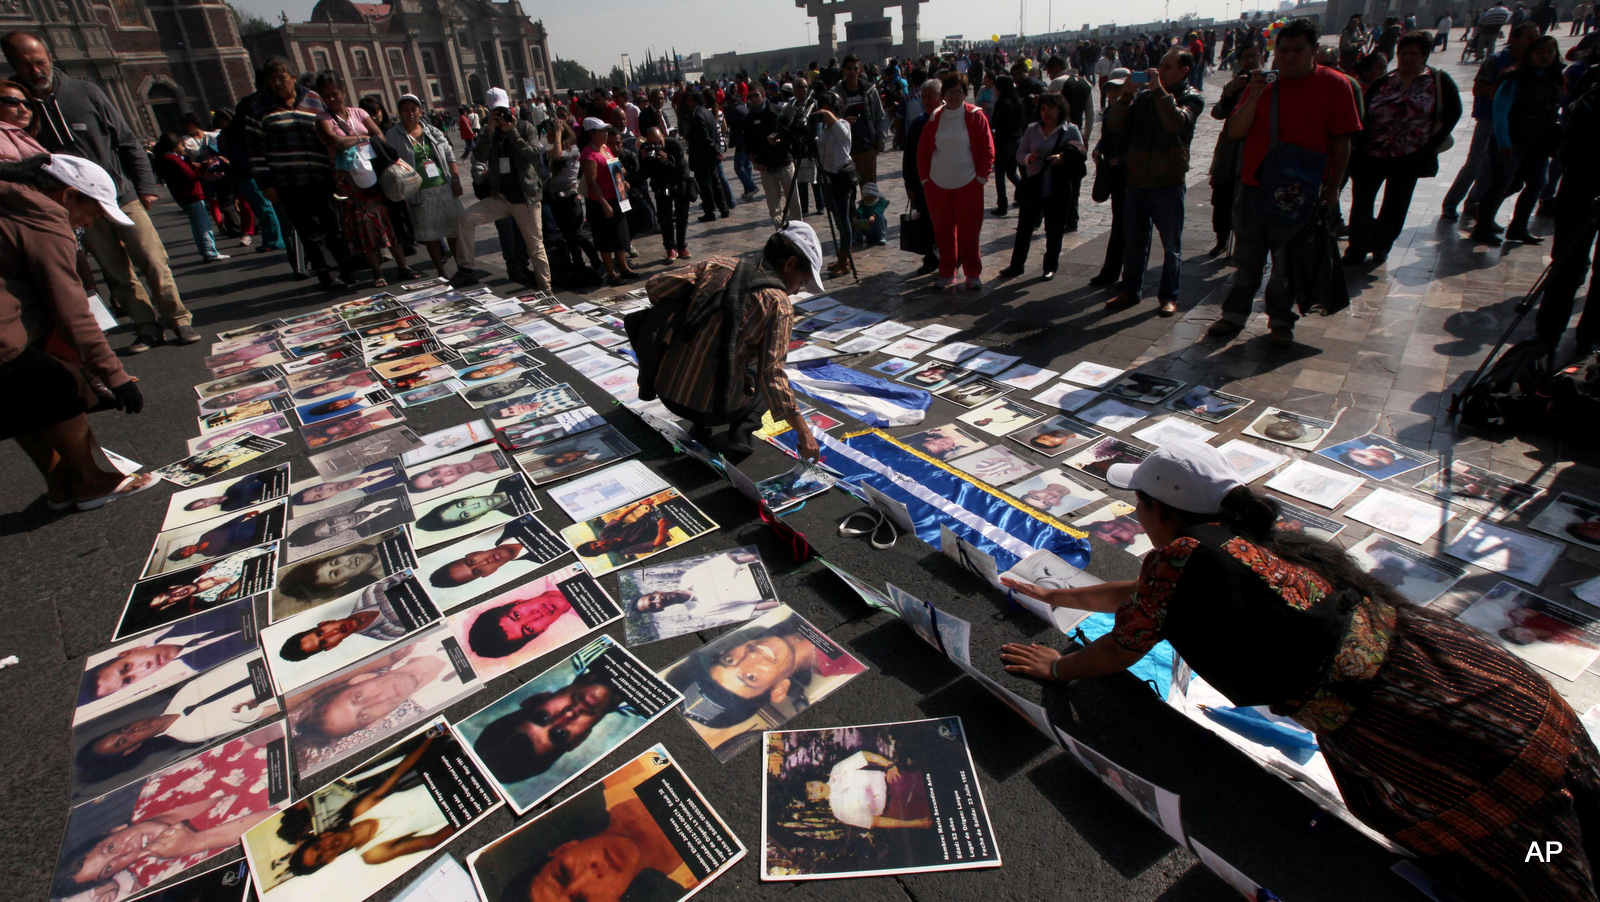 Central American mothers lay pictures of their children who went missing while crossing Mexico for the United States, on the steps of the Basilica de Guadalupe in Mexico City, Saturday Nov. 29, 2014.